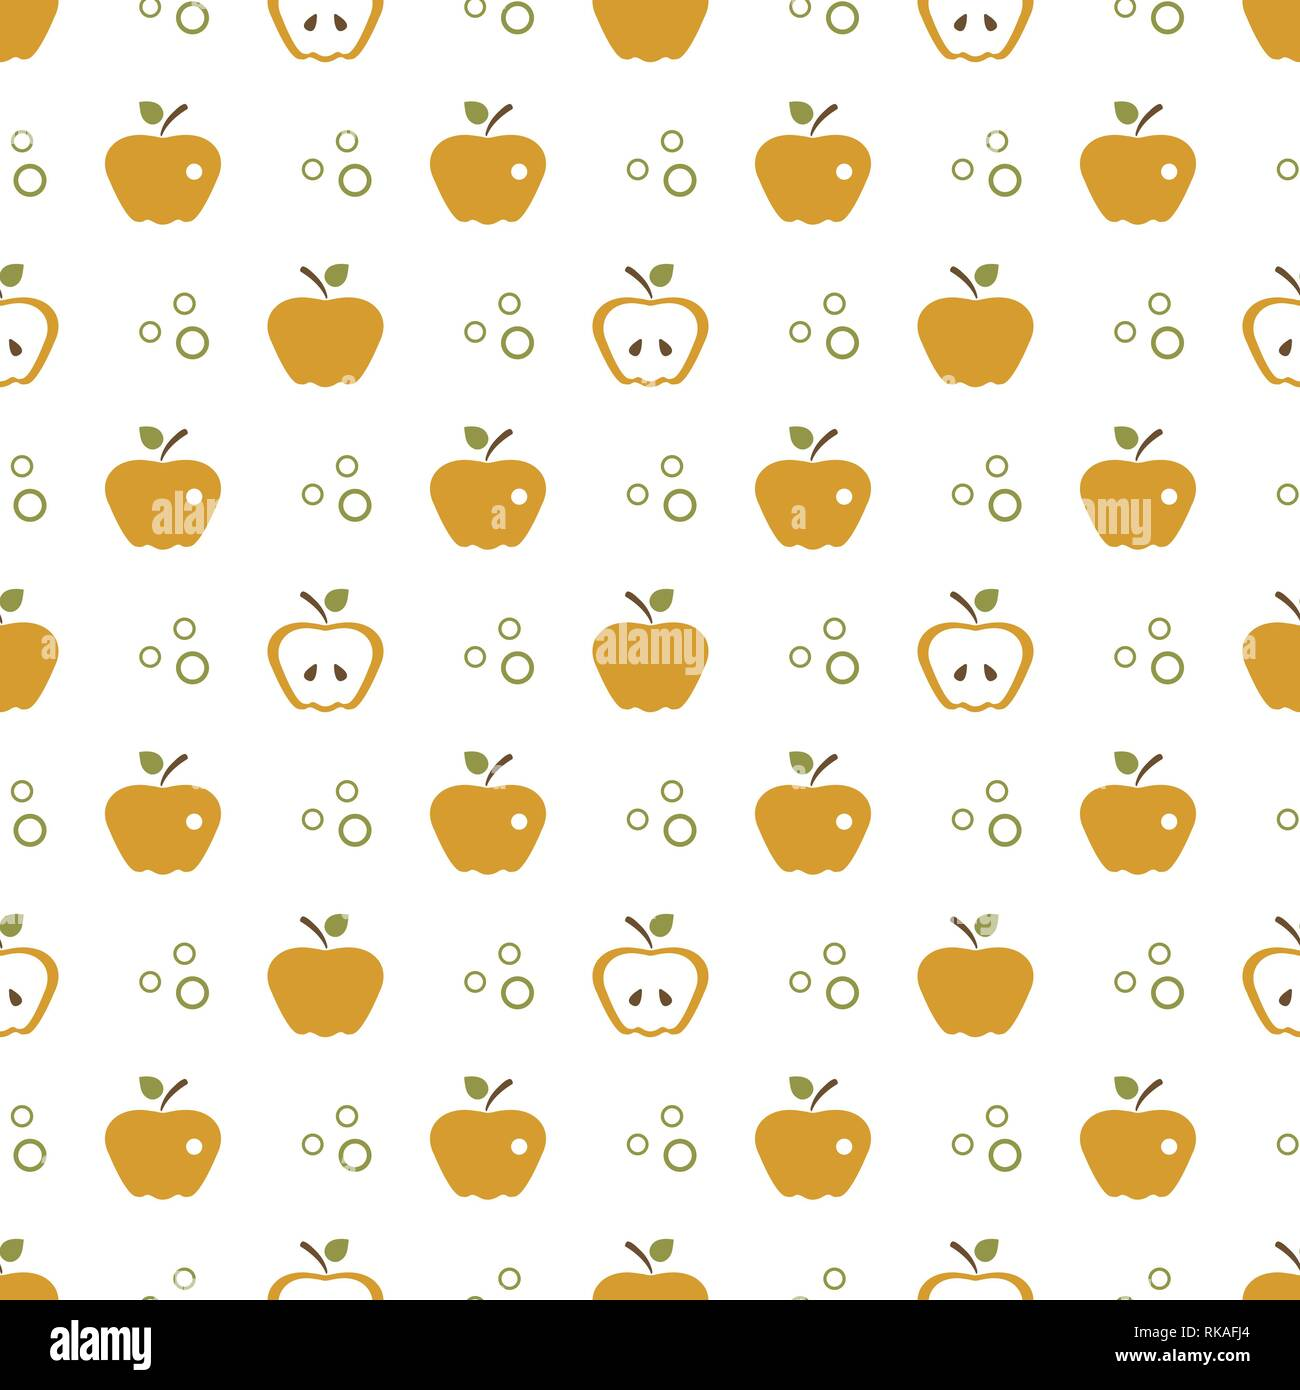 Seamless Pattern With Apples Vector Illustration Apple And Leaf Fruit Background Design